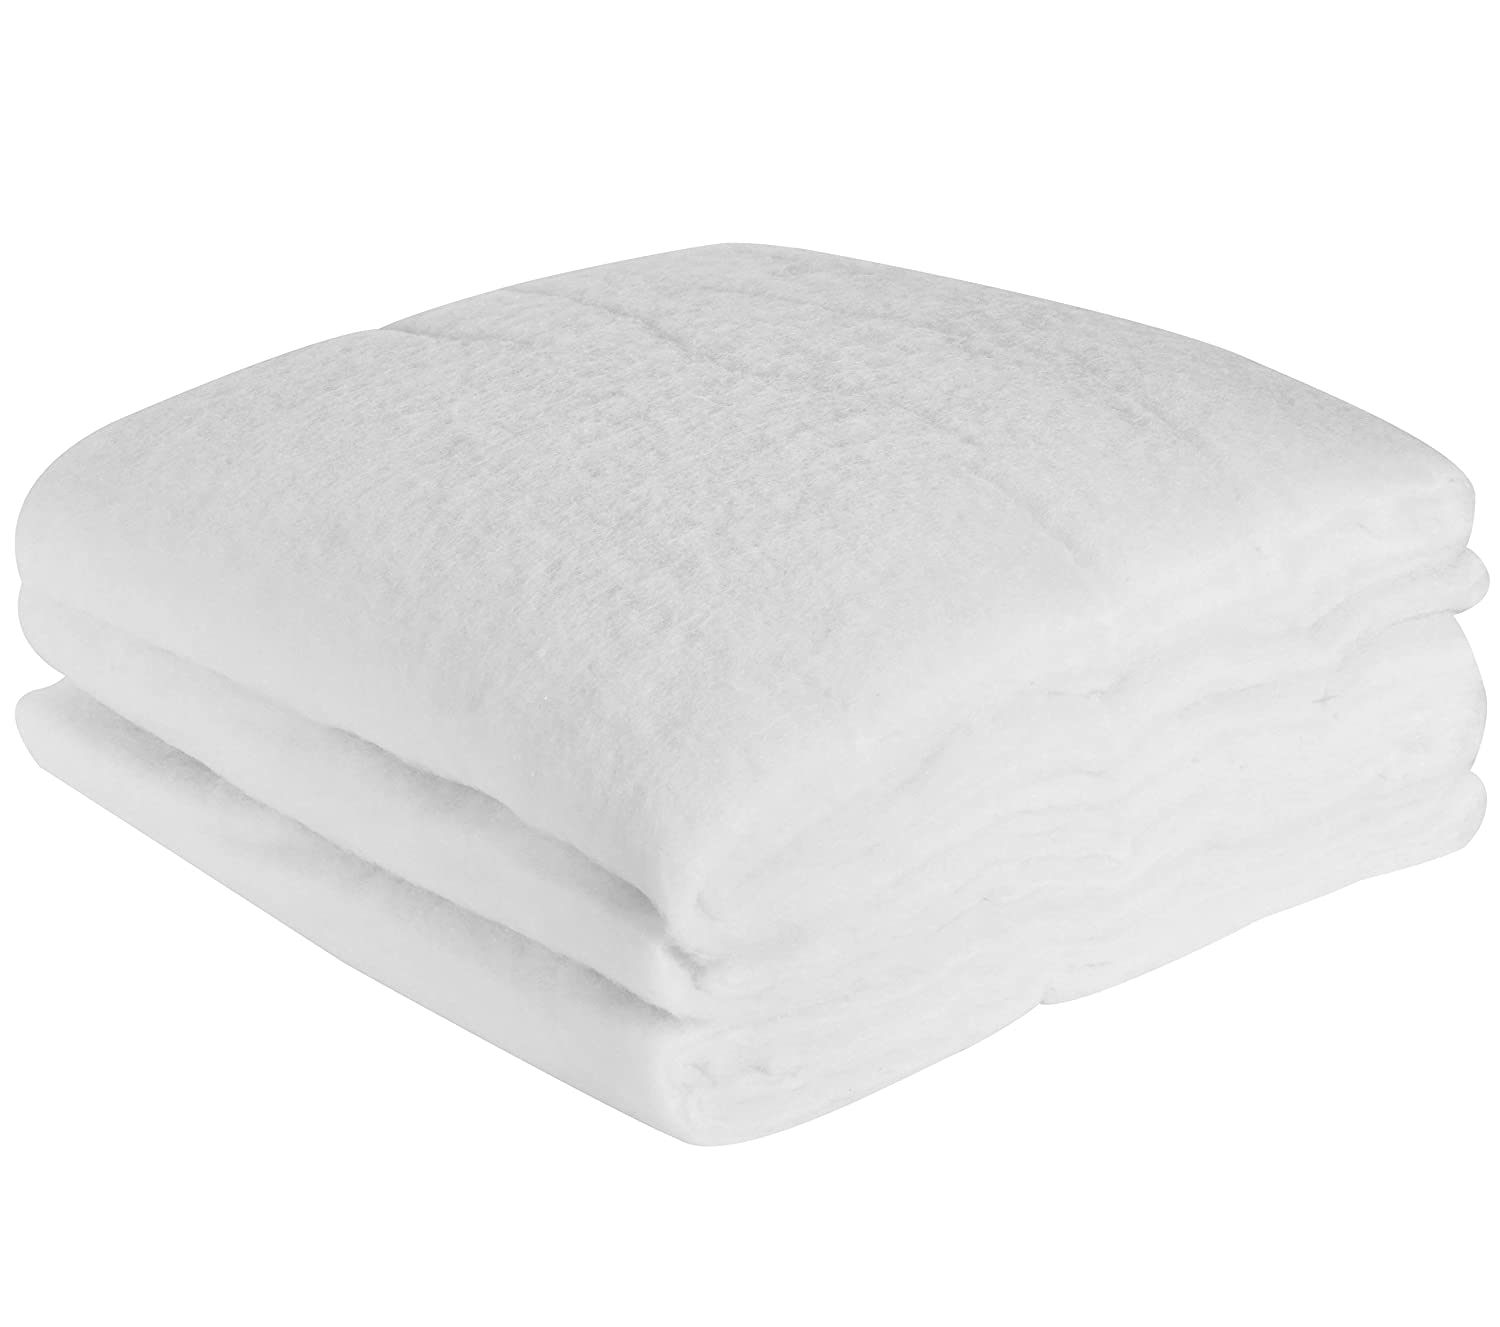 3 Pack Christmas Snow Cover Blankets-Soft Fluffy Thick White Cotton Blanket Artificial Fake Holiday Winter Decor For Christmas Tree Skirt Table Runner Village Displays Scene Drapes Crafts 15ft x 10ft Gift Boutique